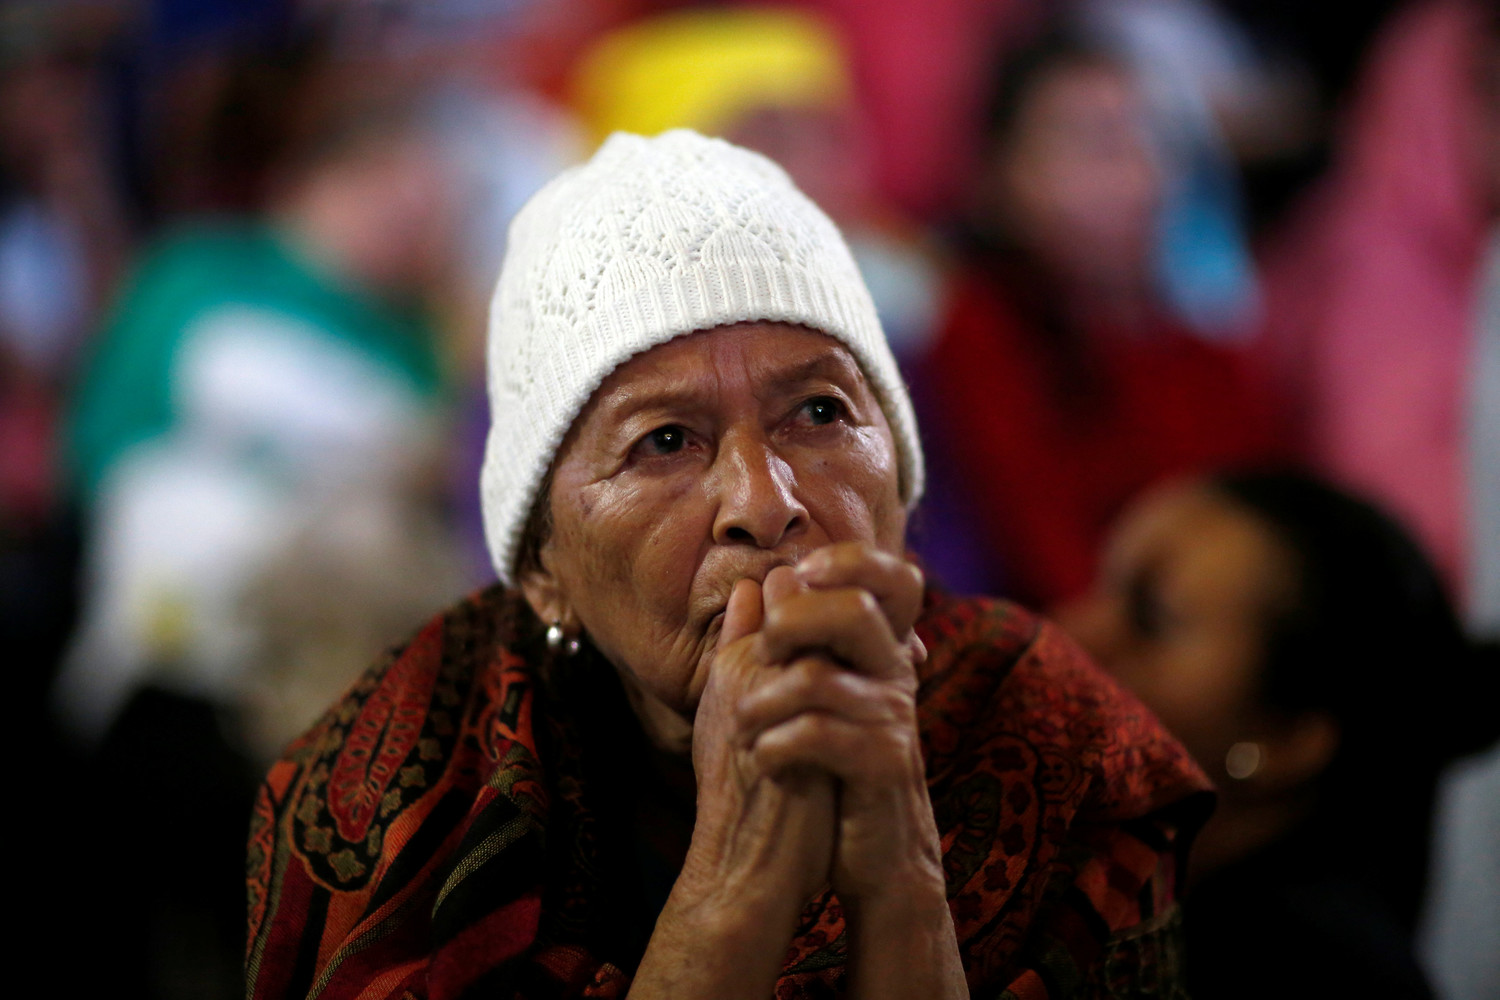 A woman attends a ceremony at Gerardo Barrios Square in San Salvador, El Salvador, Oct. 14, as Pope Francis celebrates the canonization Mass for St. Oscar Romero and six other new saints in St. Peter's Square at the Vatican.